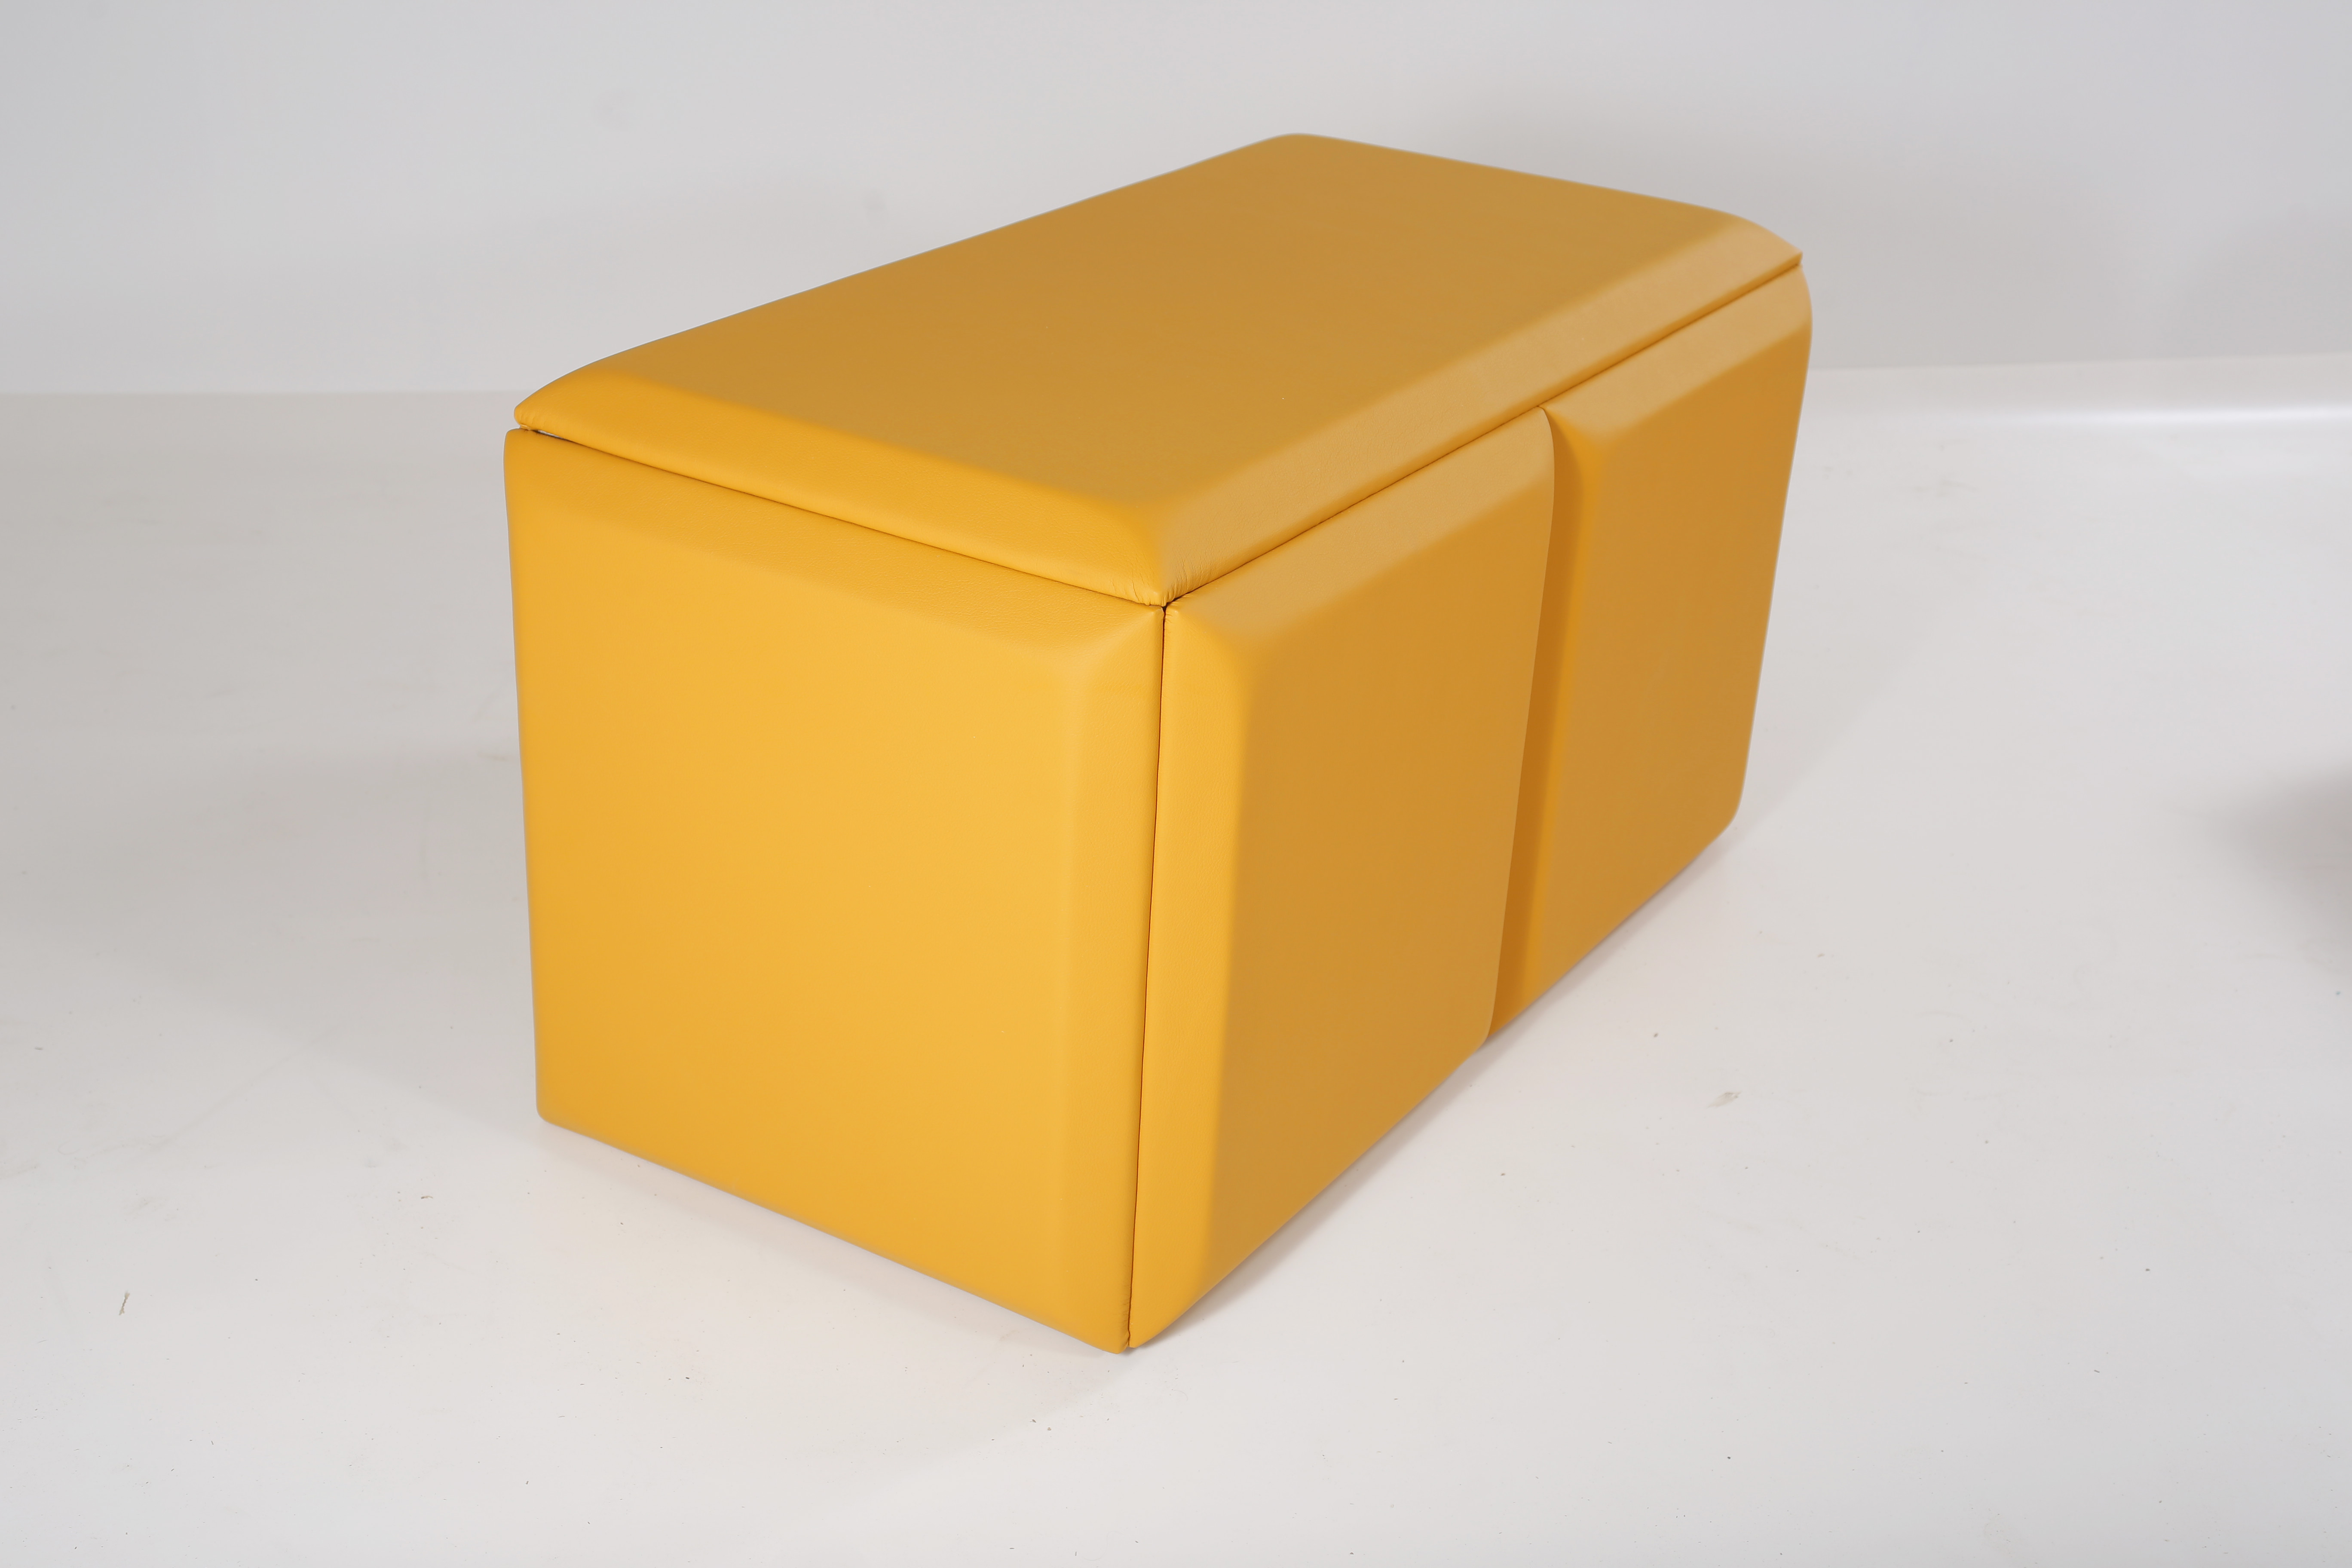 7 DOUBLE QUBIC YELLOW